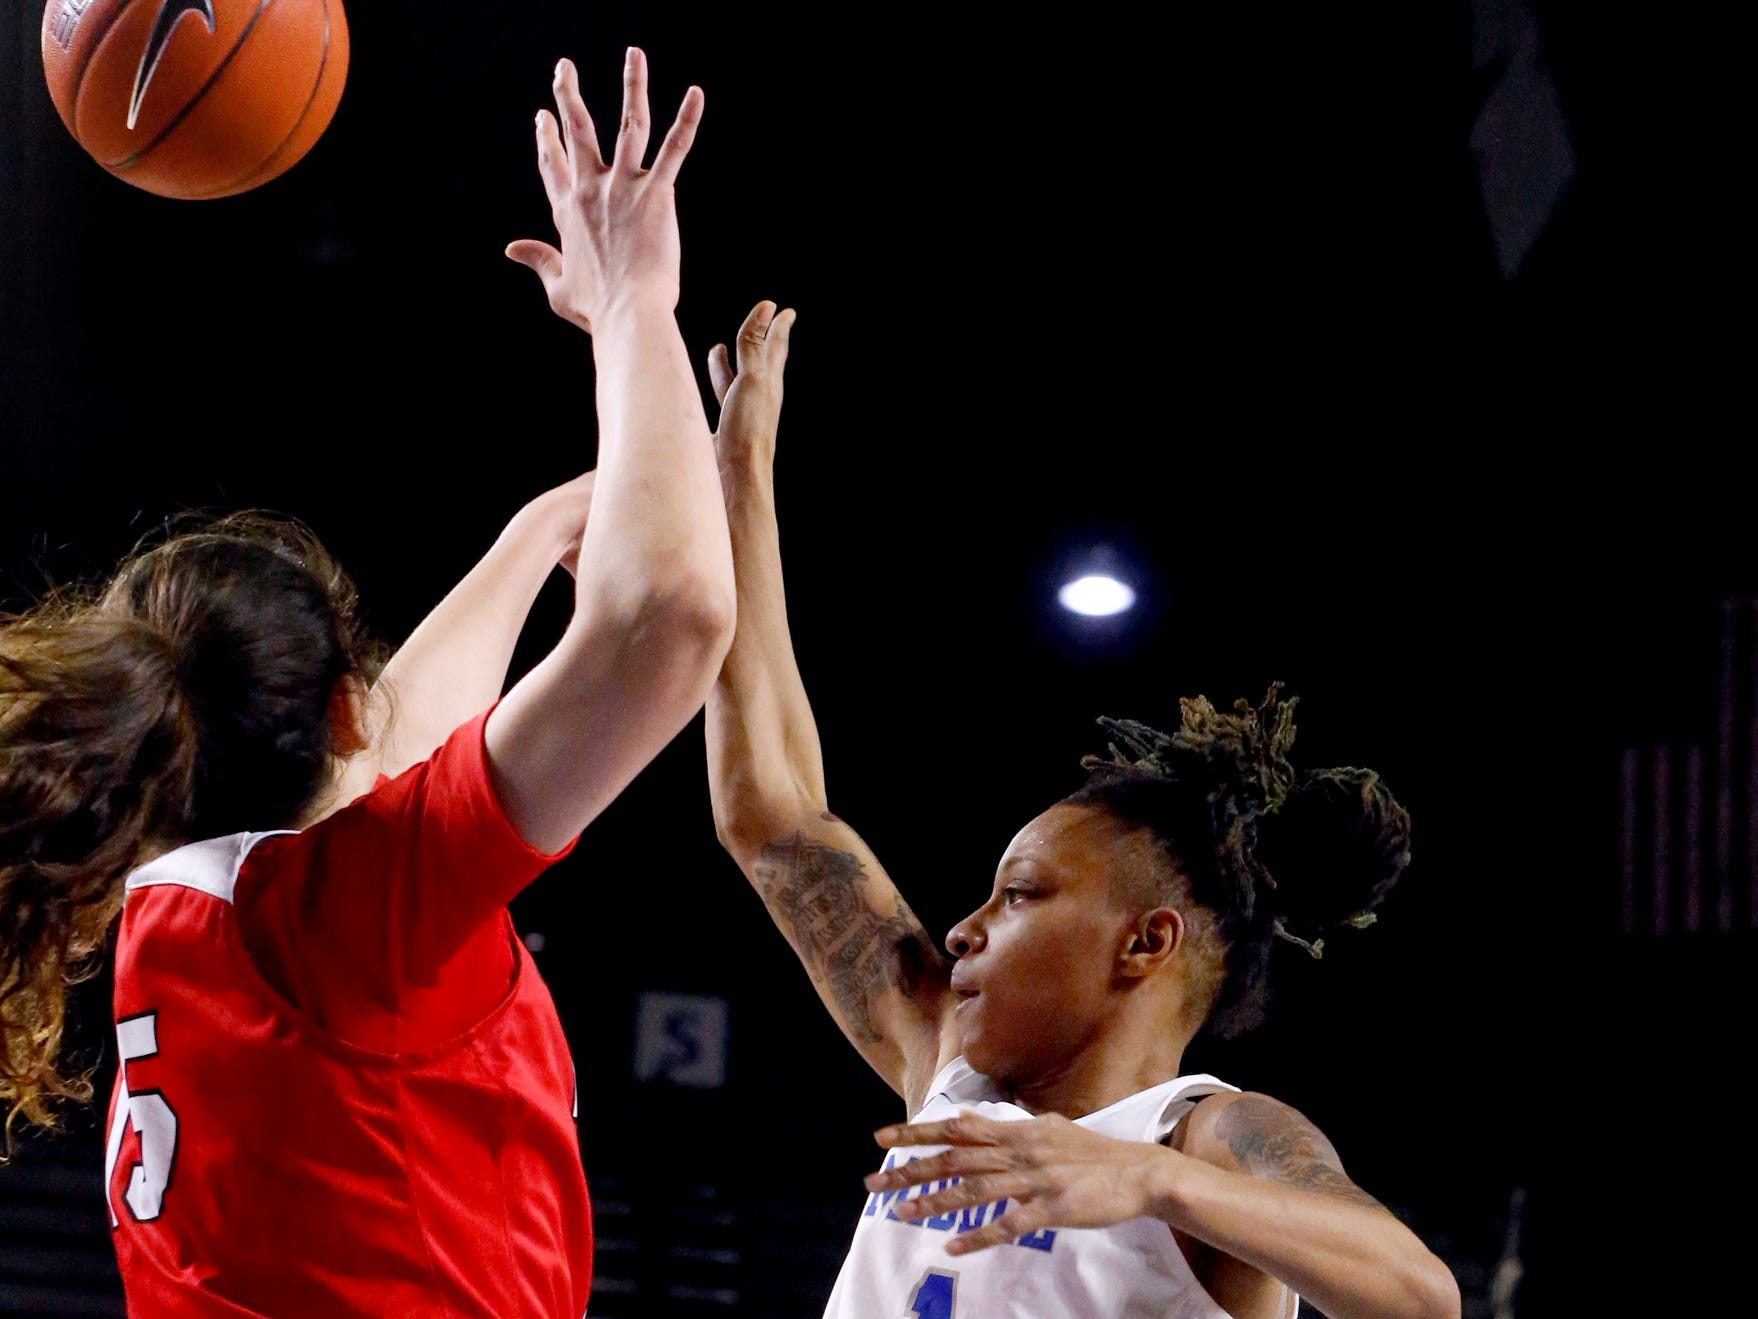 MTSU's guard A'Queen Hayes (1) passes the ball as Western's forward Raneem Elgedawy (15) guards her on Thursday, Feb. 14, 2019.